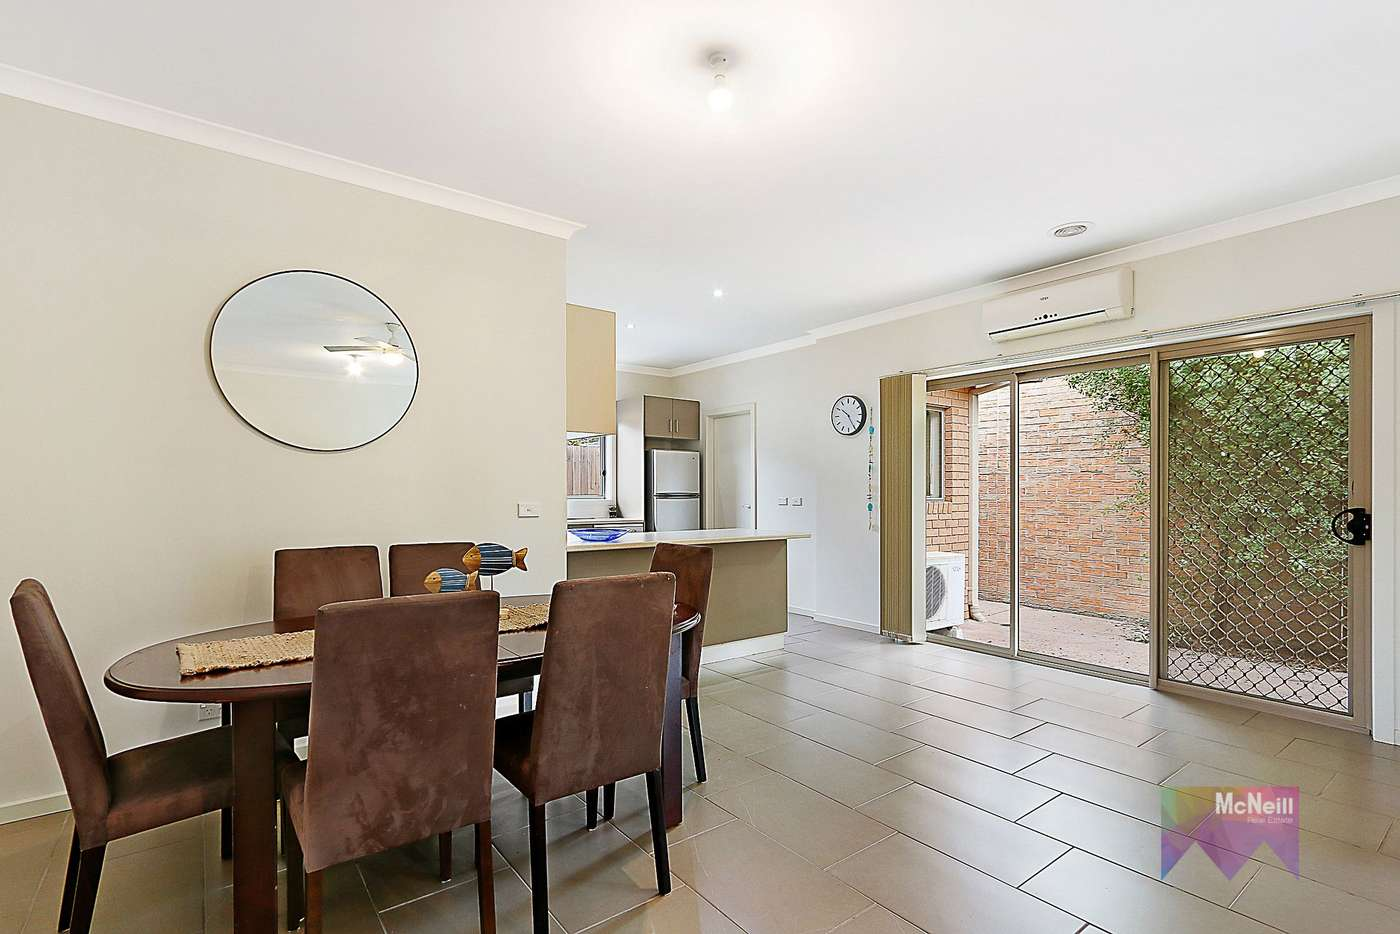 Sixth view of Homely townhouse listing, 3/26 Hygeia Street, Rye VIC 3941